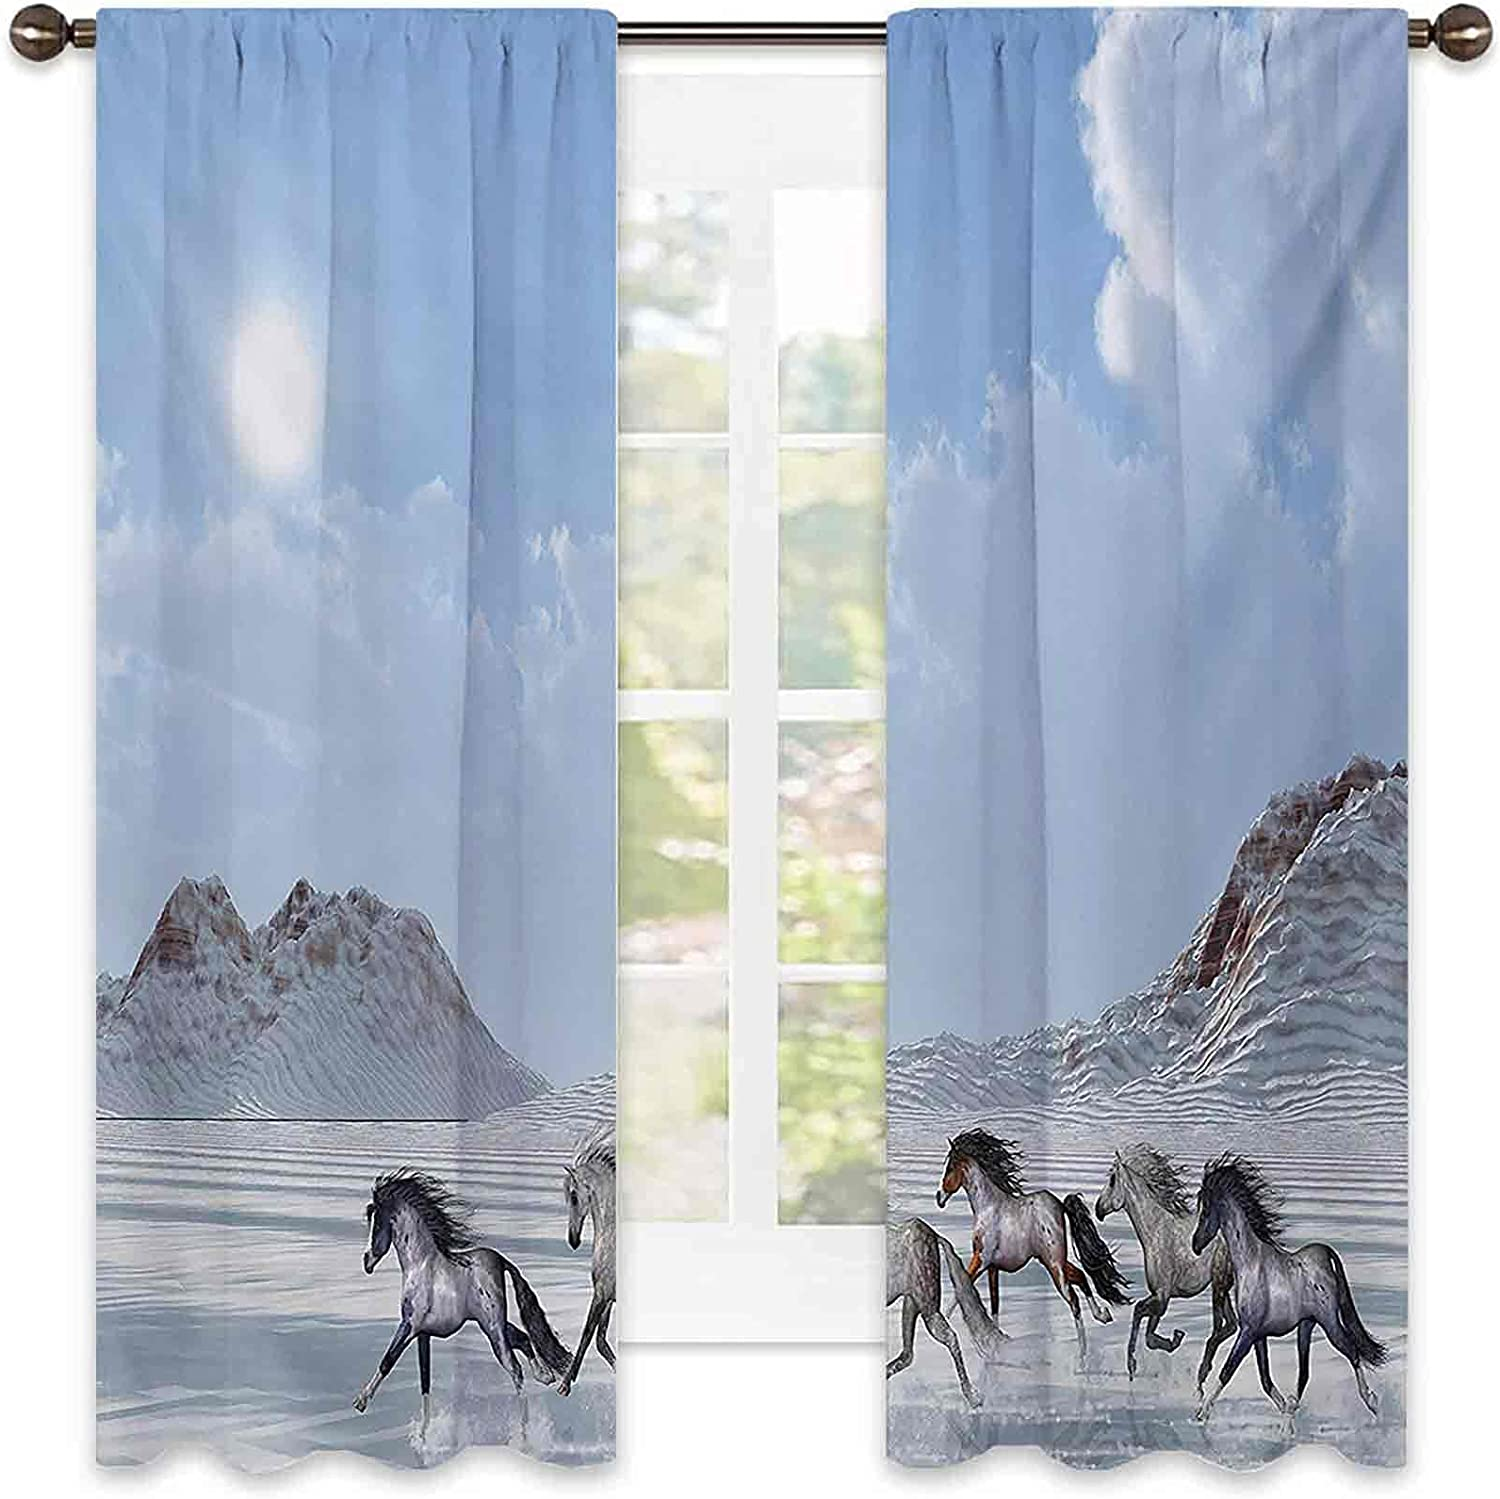 Horses Bedroom Rod Max 66% OFF Pocket Blackout Wild Herd Curtains of Tulsa Mall Noble